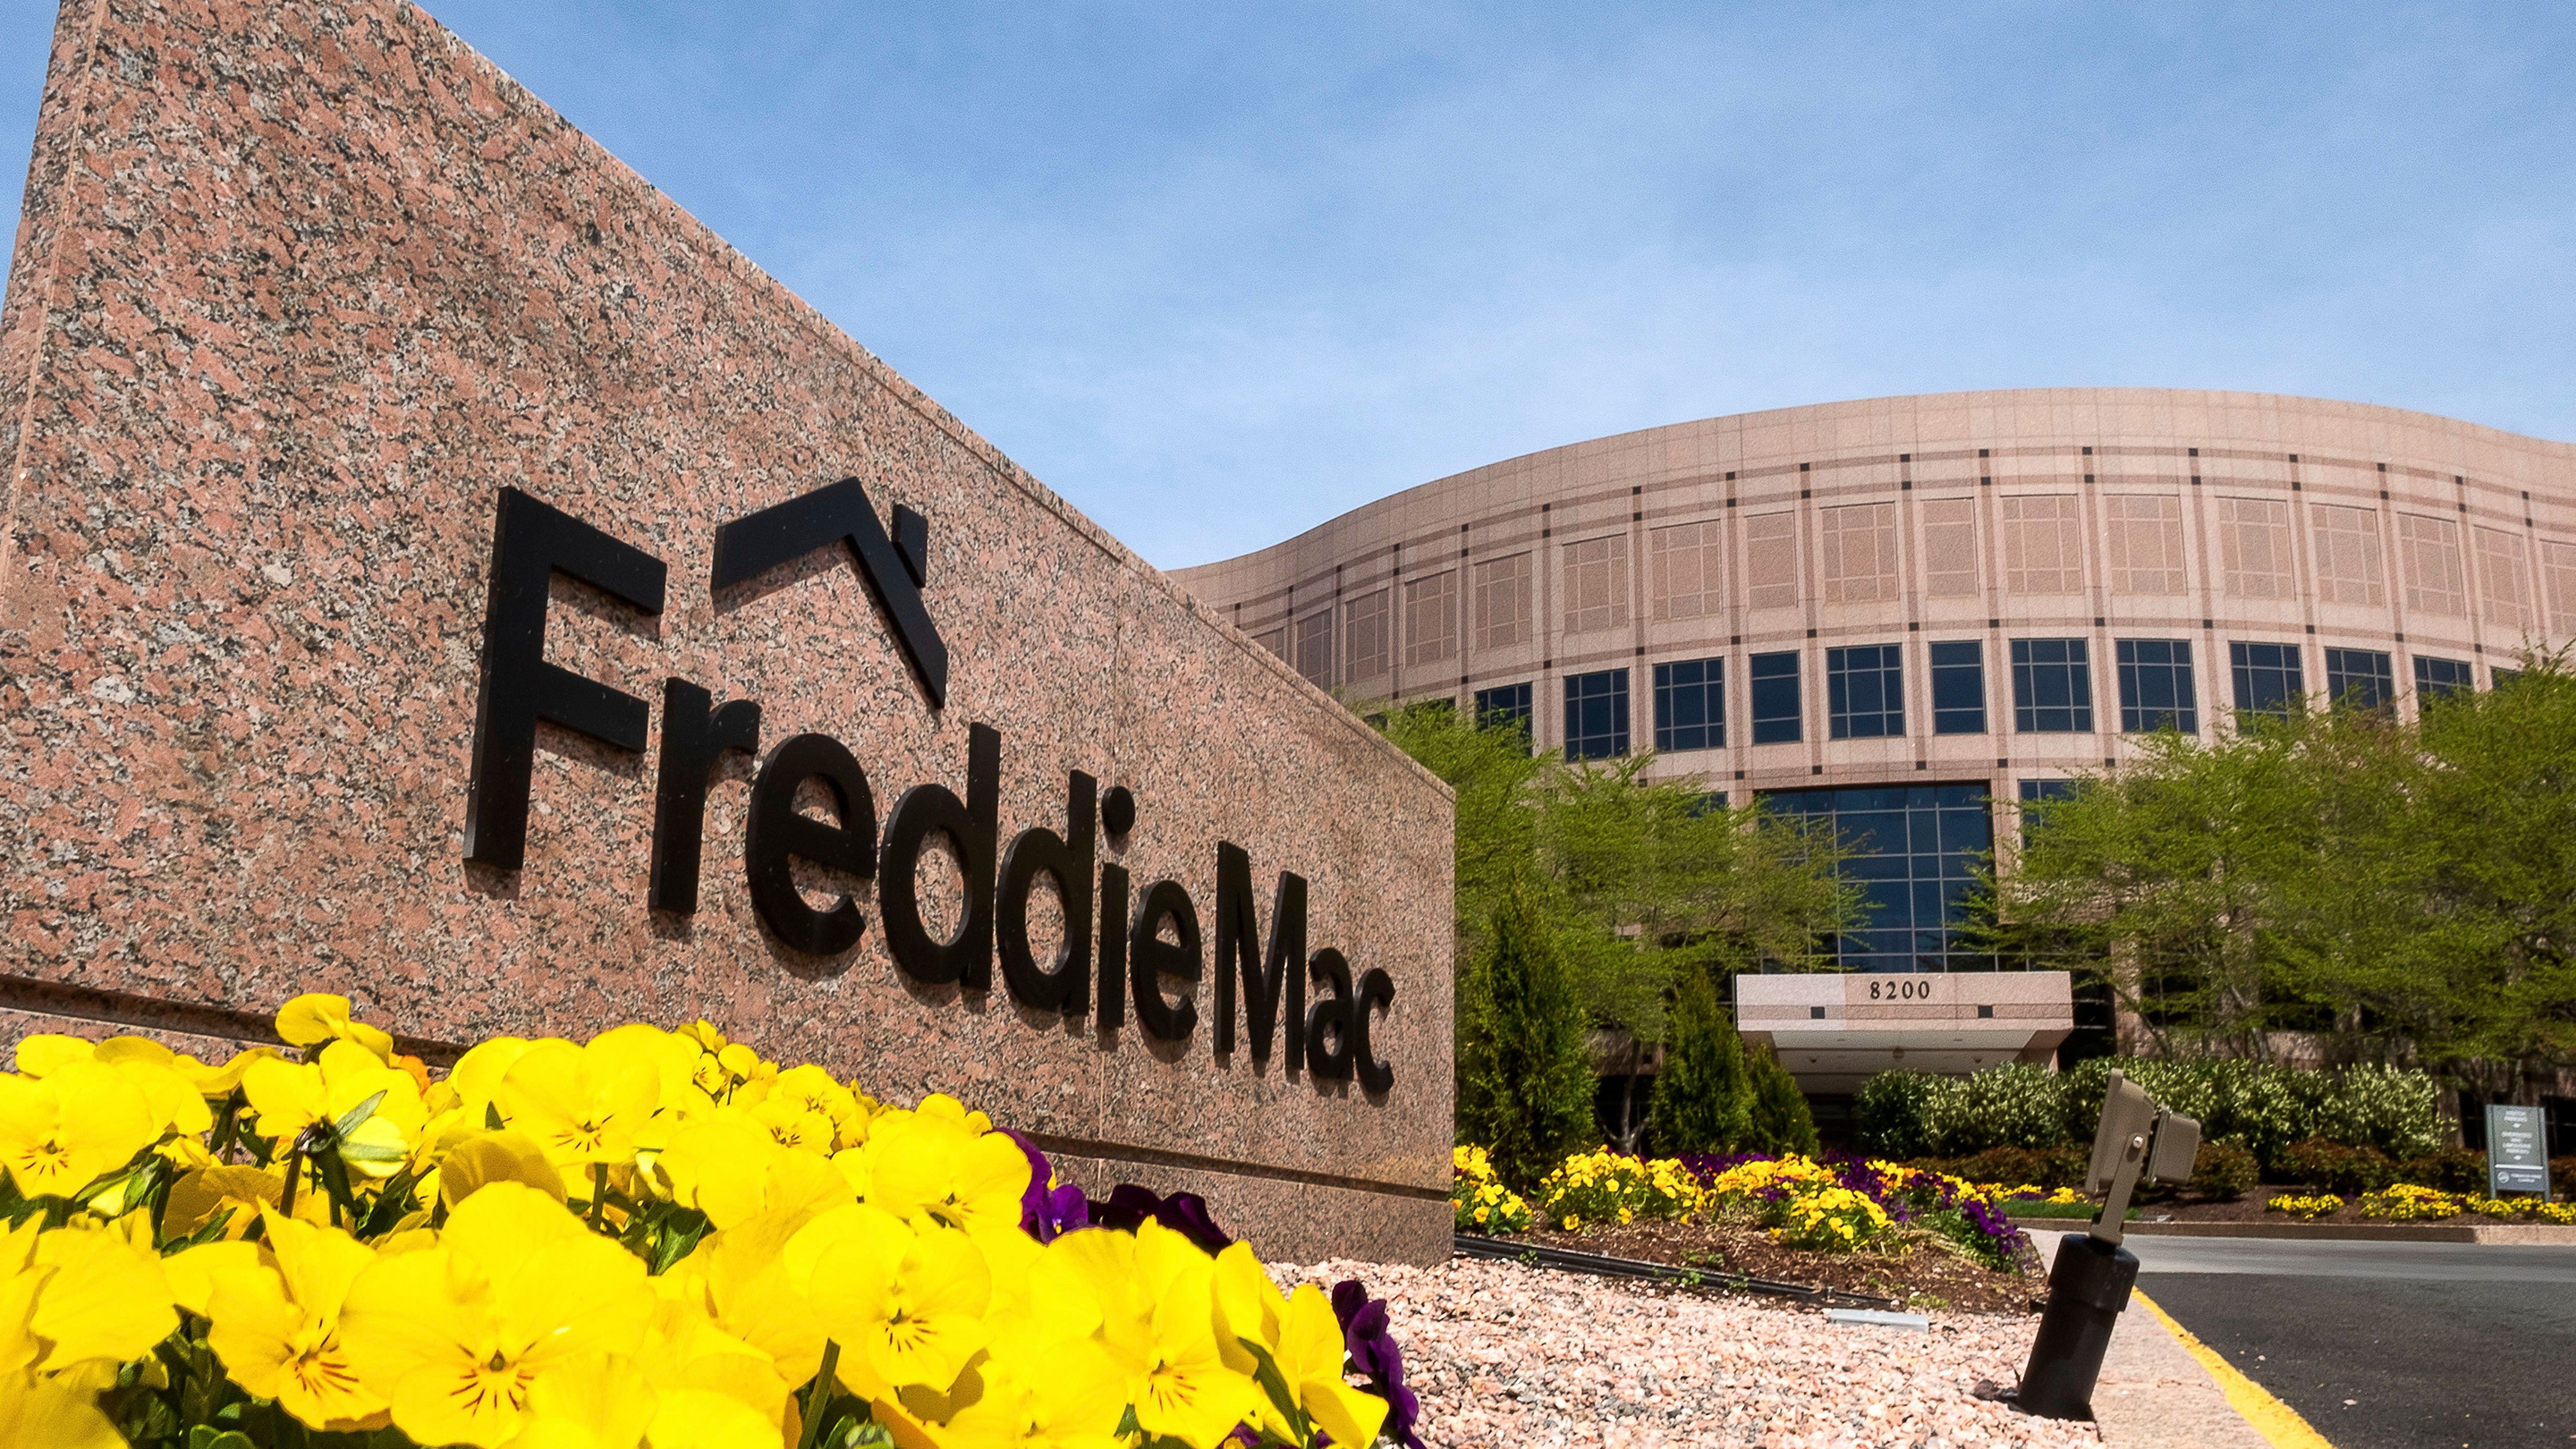 Freddie Mac Headquarters, McLean, USA - 21 Apr 2018